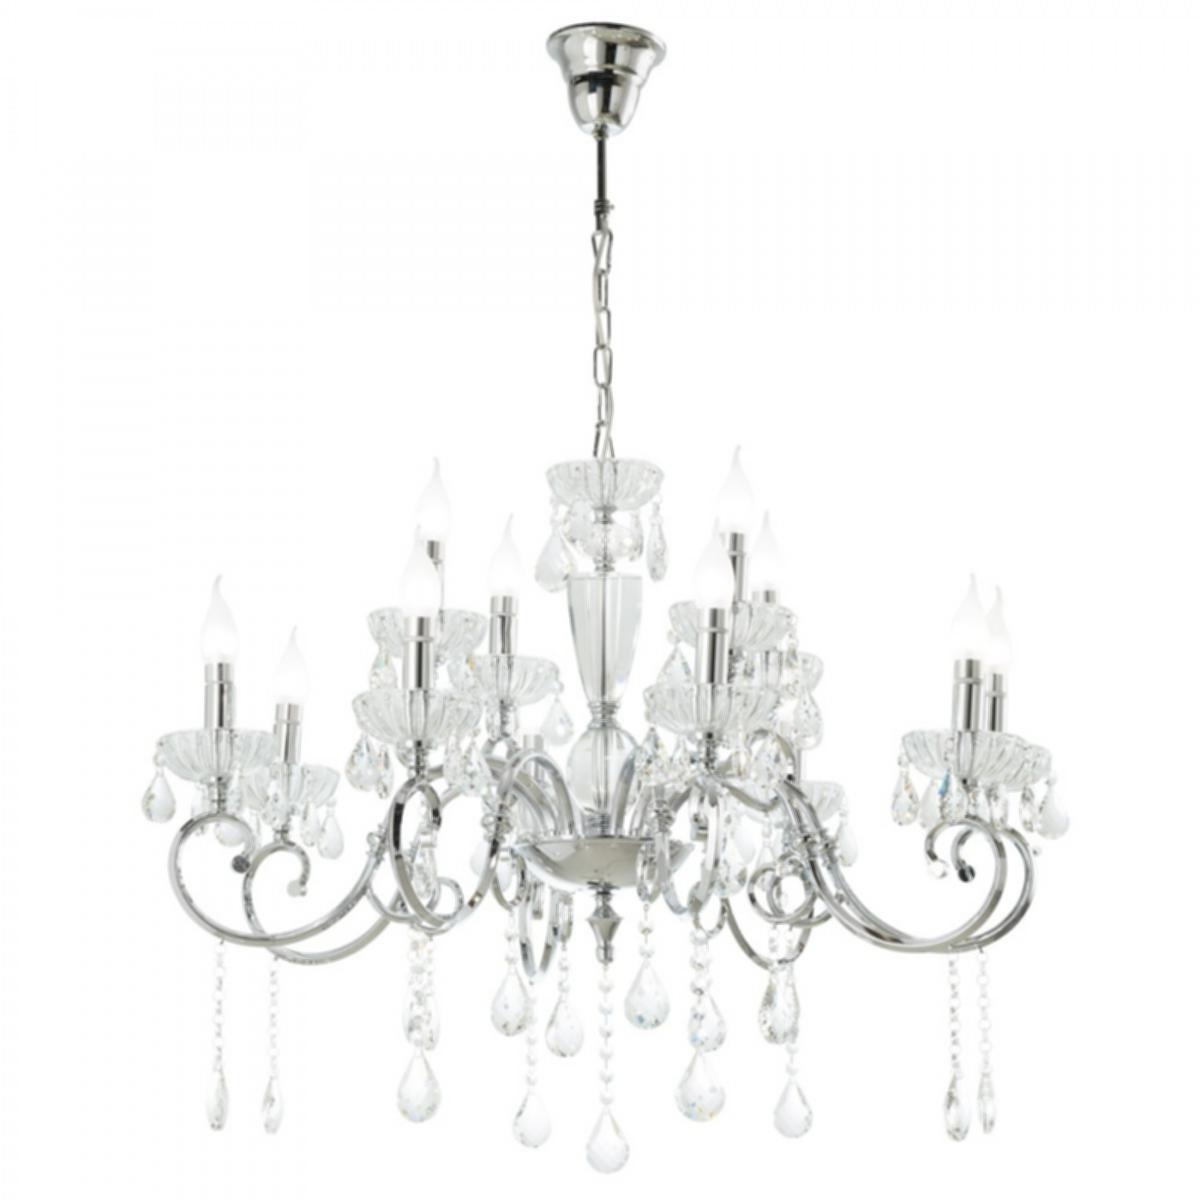 Home Design Intended For Most Popular Chandelier Accessories (View 11 of 20)